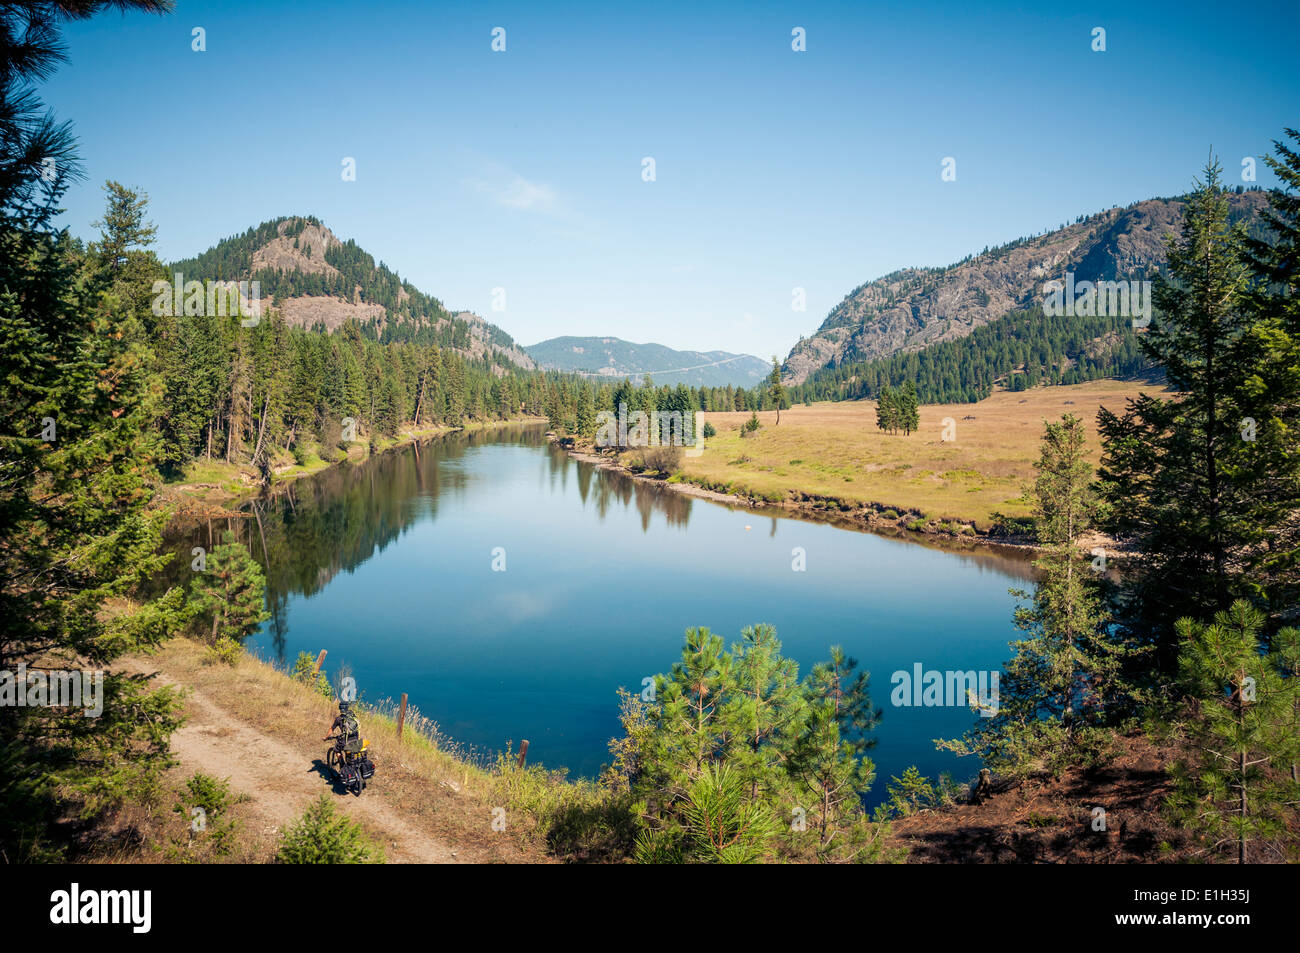 Cycliste homme Rail-Trail dans électrique Valley/chemin de fer de Kettle Valley/sentier KVR next le Kettle Valley River, Colombie-Britannique, Canada Photo Stock